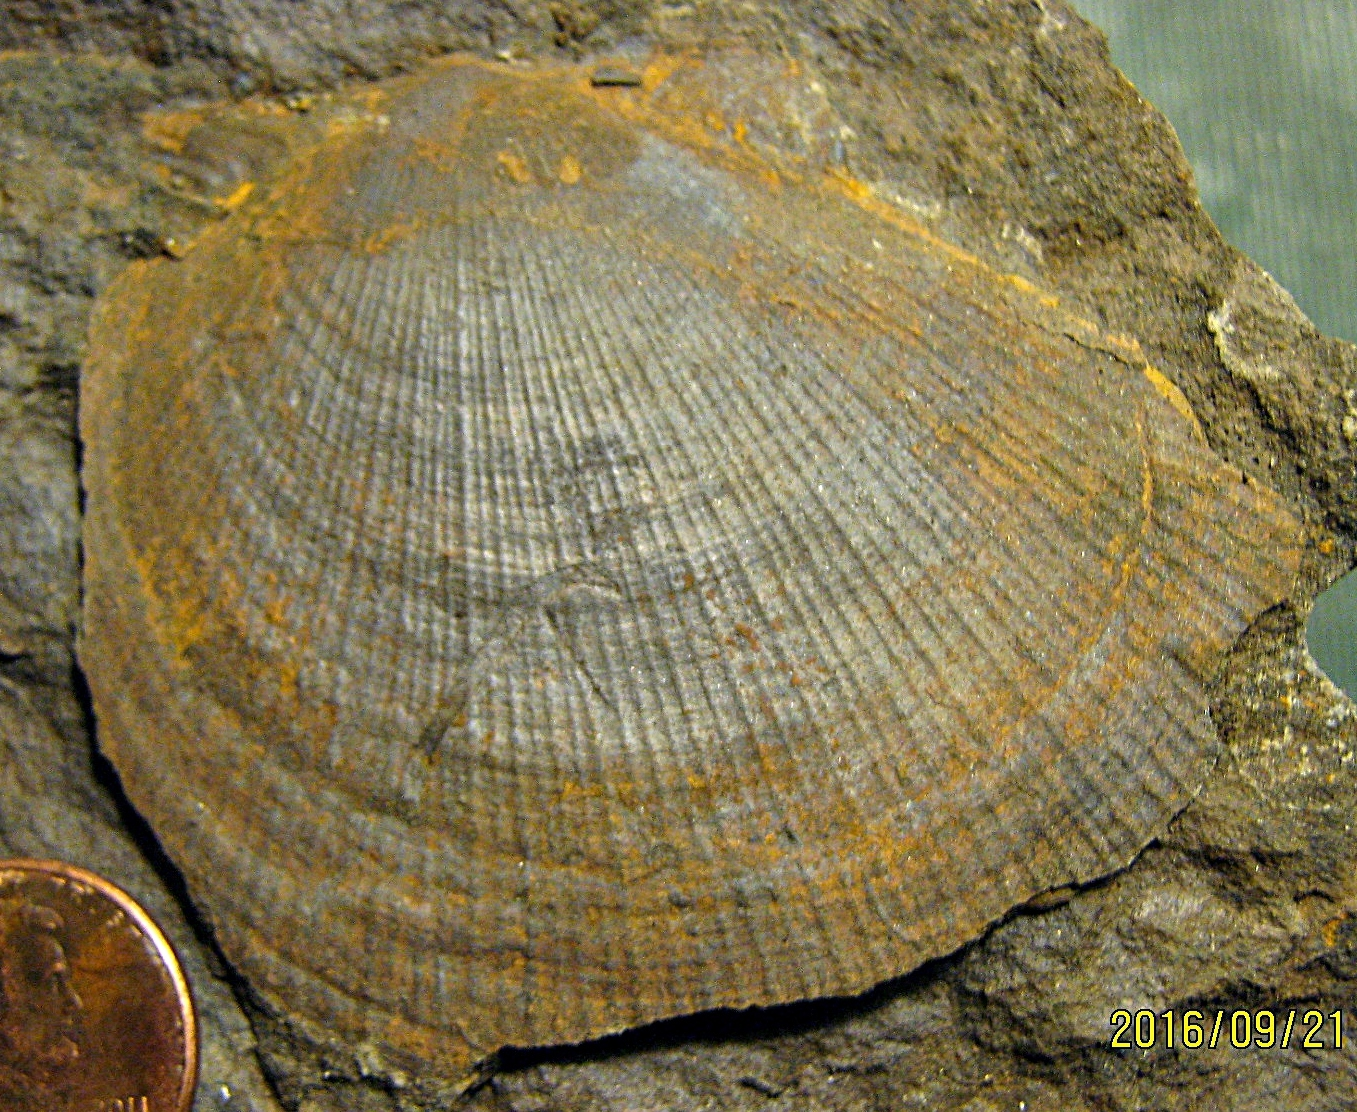 Pteriomorphia Bivalve from Madison Co., NY.